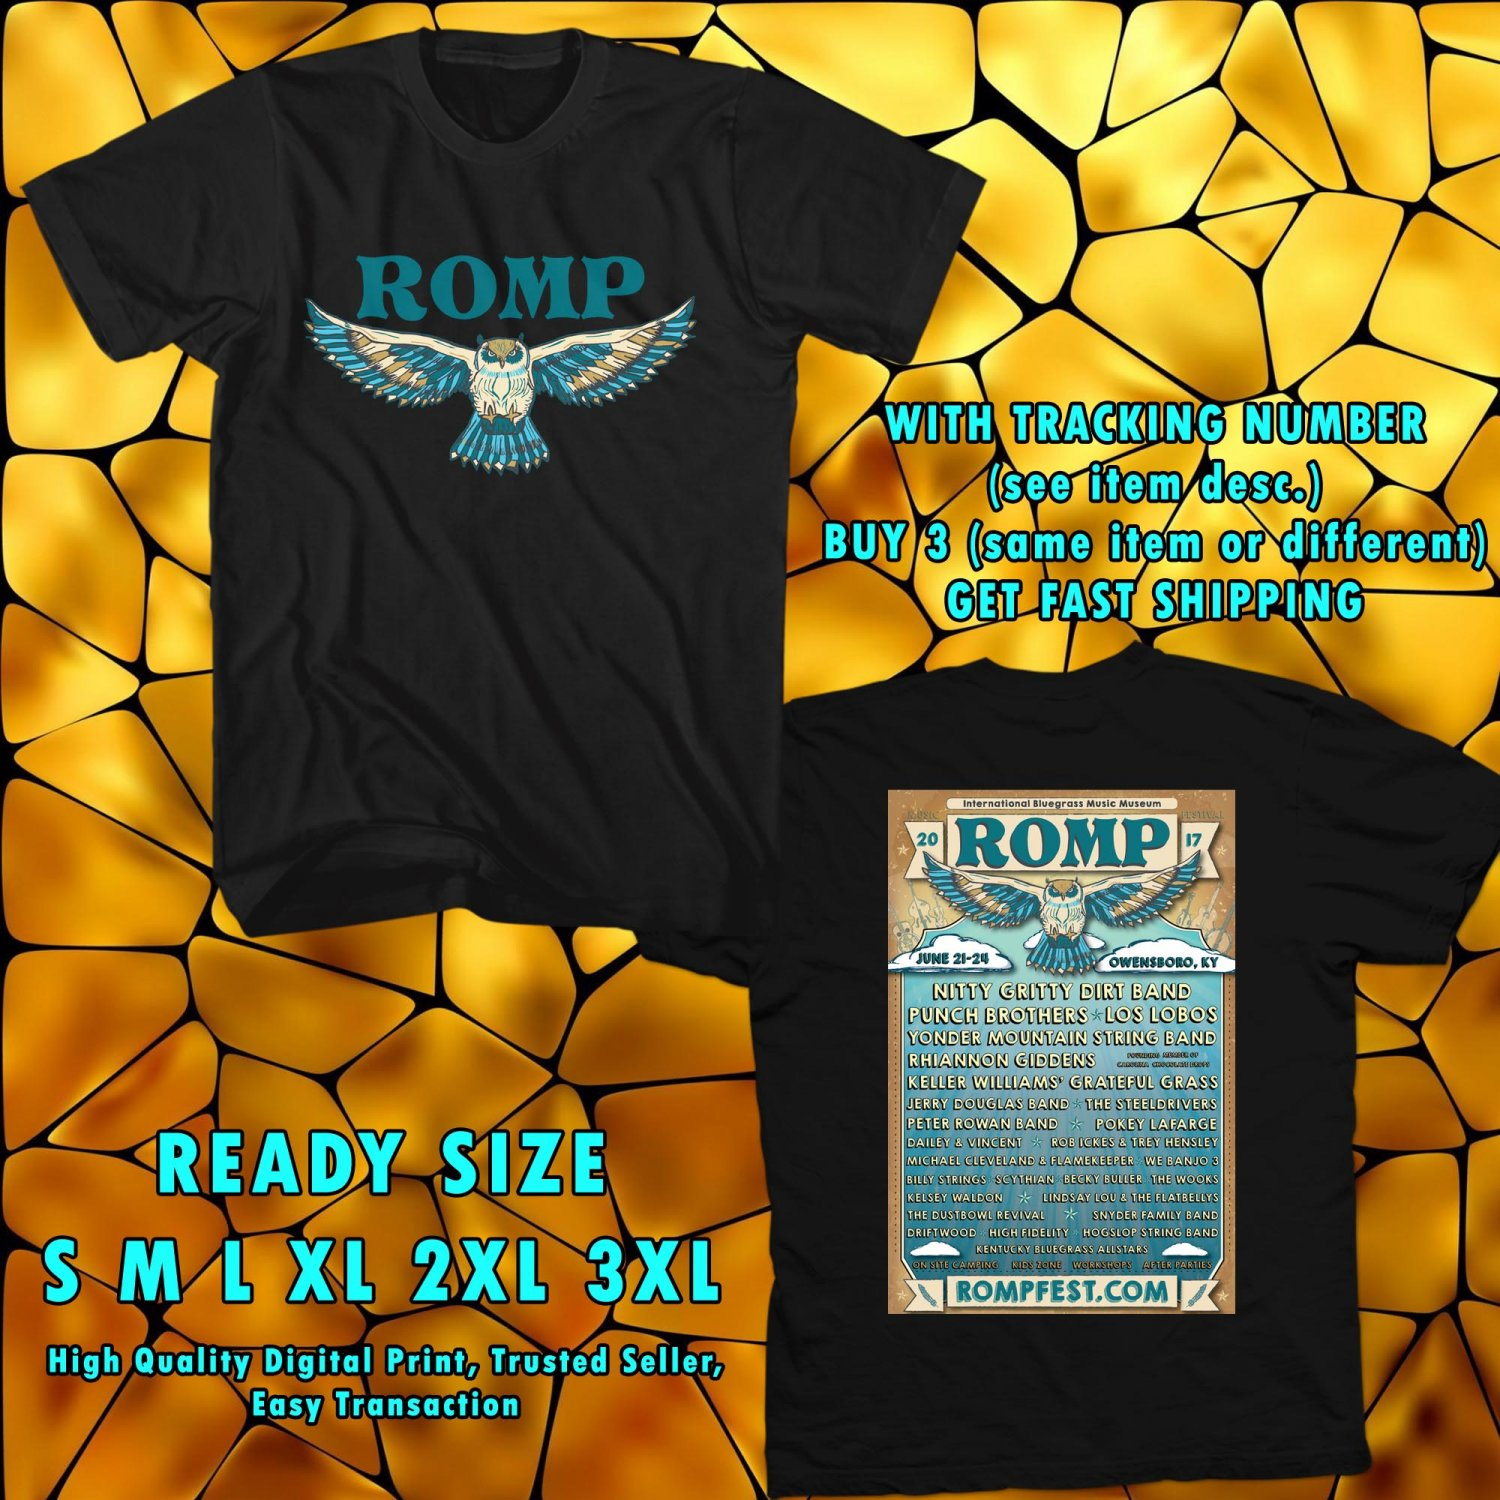 HITS ROMP FEST JUNE 2017 BLACK TEE'S 2SIDE MAN WOMEN ASTR